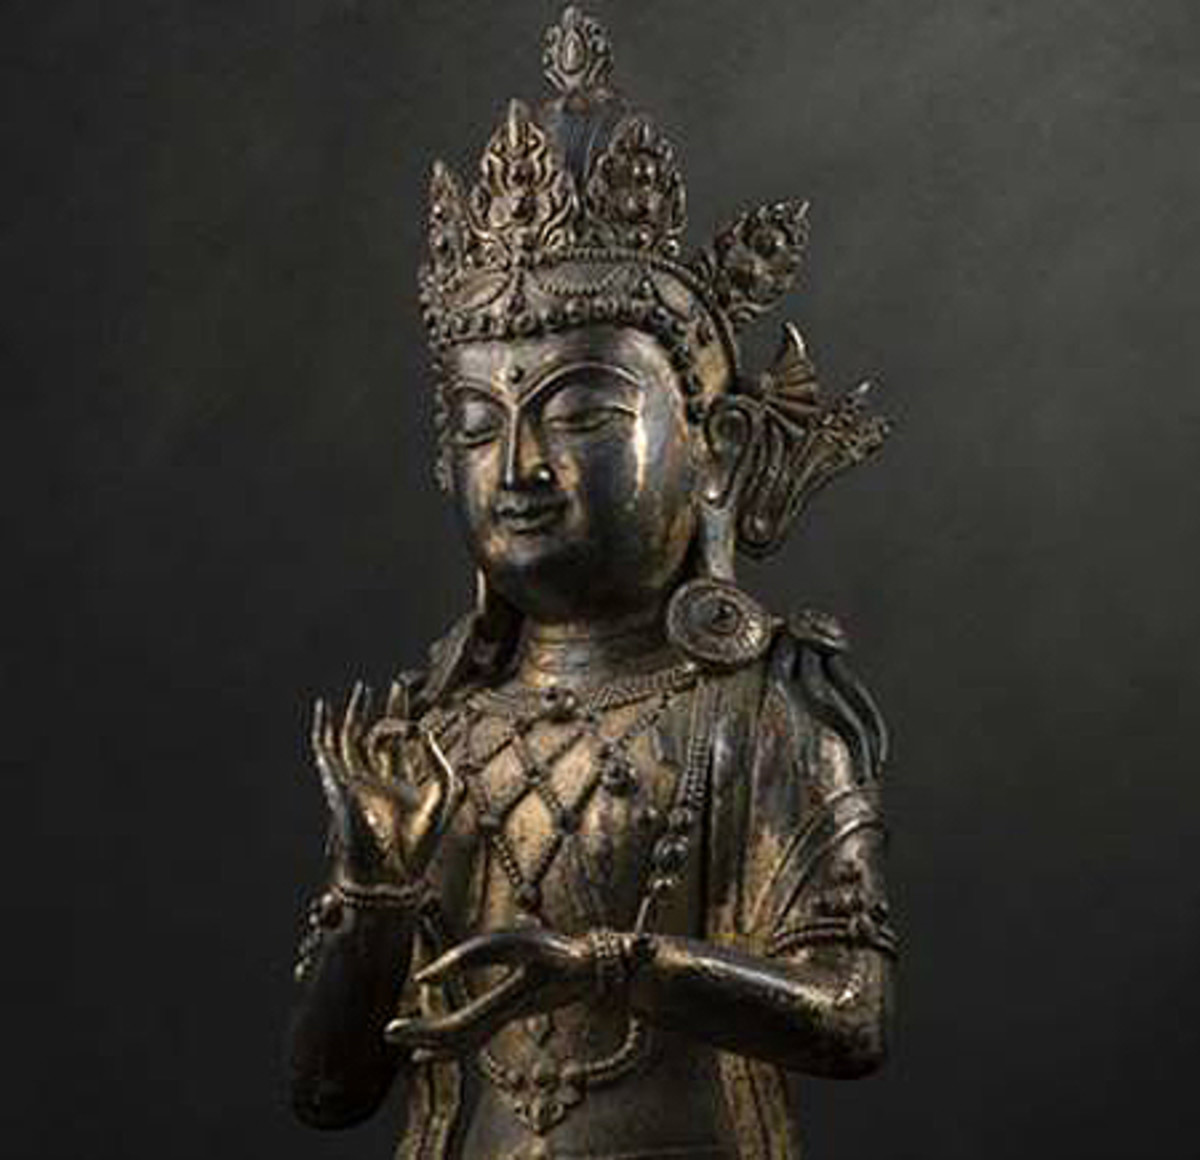 A statue of the bodhisattva Guanyin from the Ming dynasty, 58 centimetres tall.